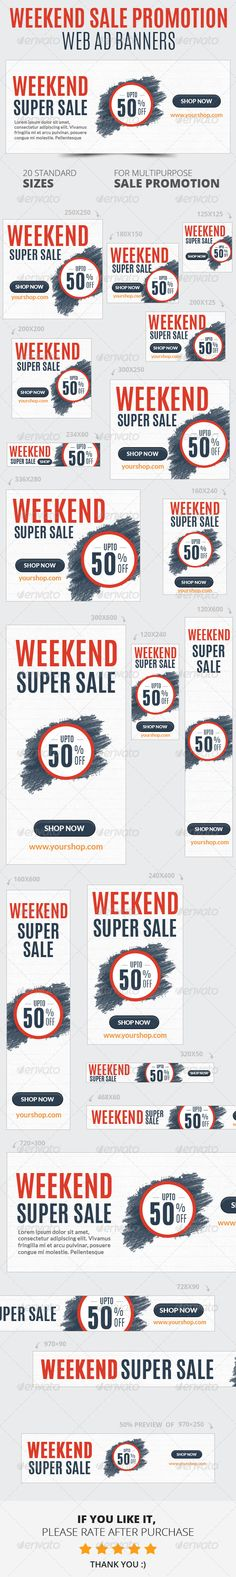 Weekend Sale Promotion Web Ad Banners Template PSD | Buy and Download: http://graphicriver.net/item/weekend-sale-promotion-web-ad-banners/6712533?WT.ac=category_thumb&WT.z_author=webduck&ref=ksioks